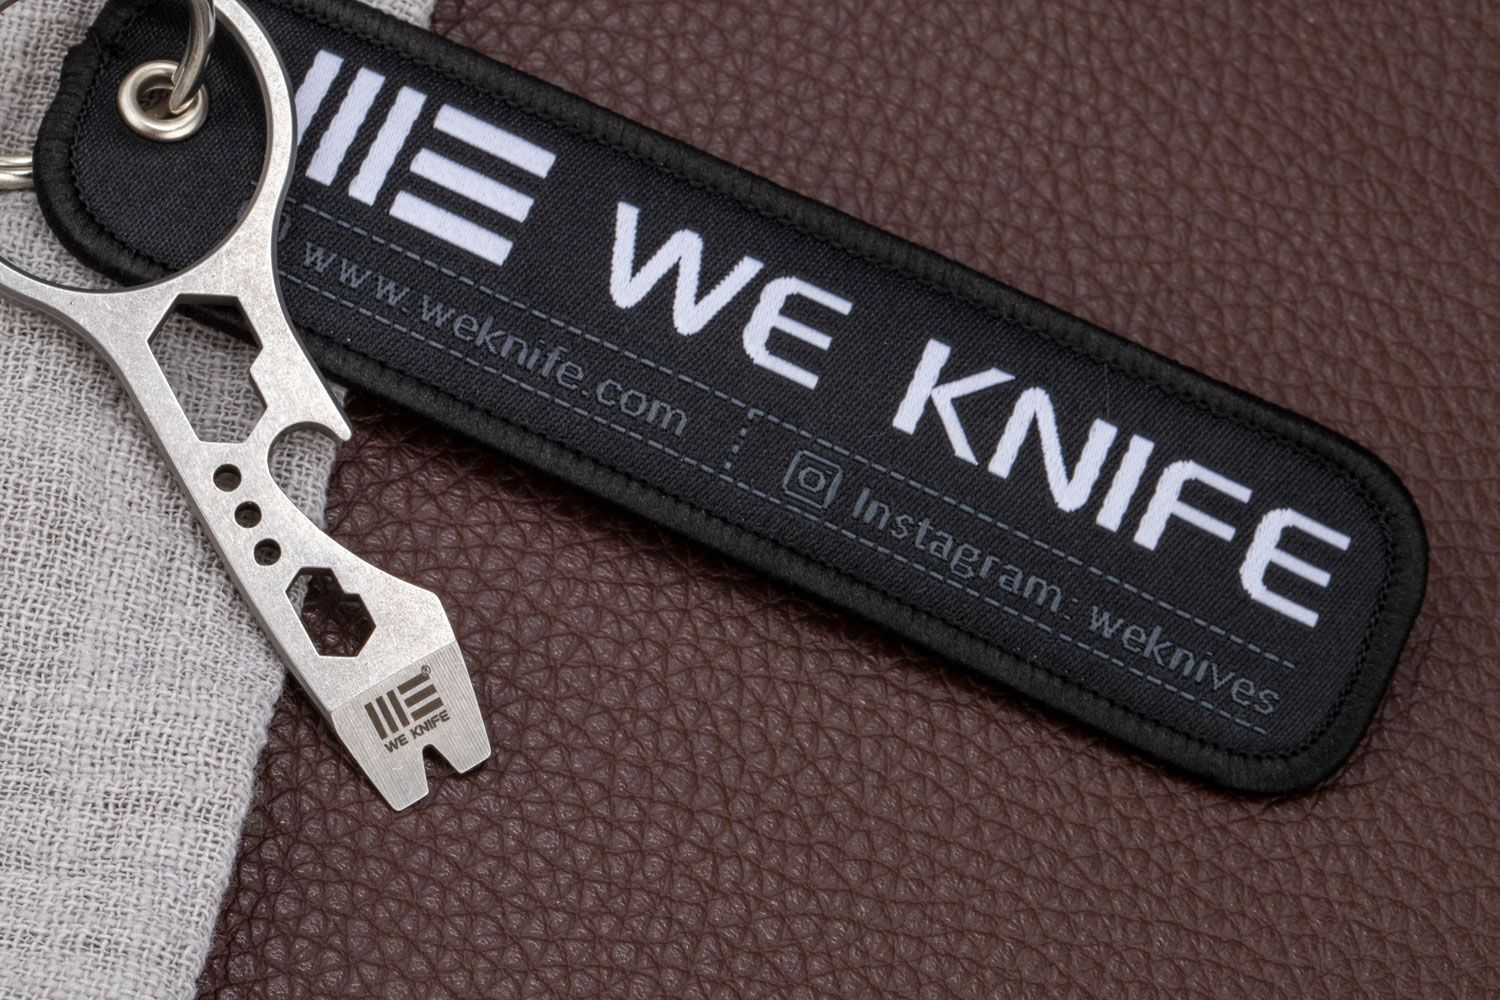 We Knife Company Keychain Multi-Tool with Flight Tag, 6 Functions (FREE Promotional Item with WE or CIVIVI Purchase)